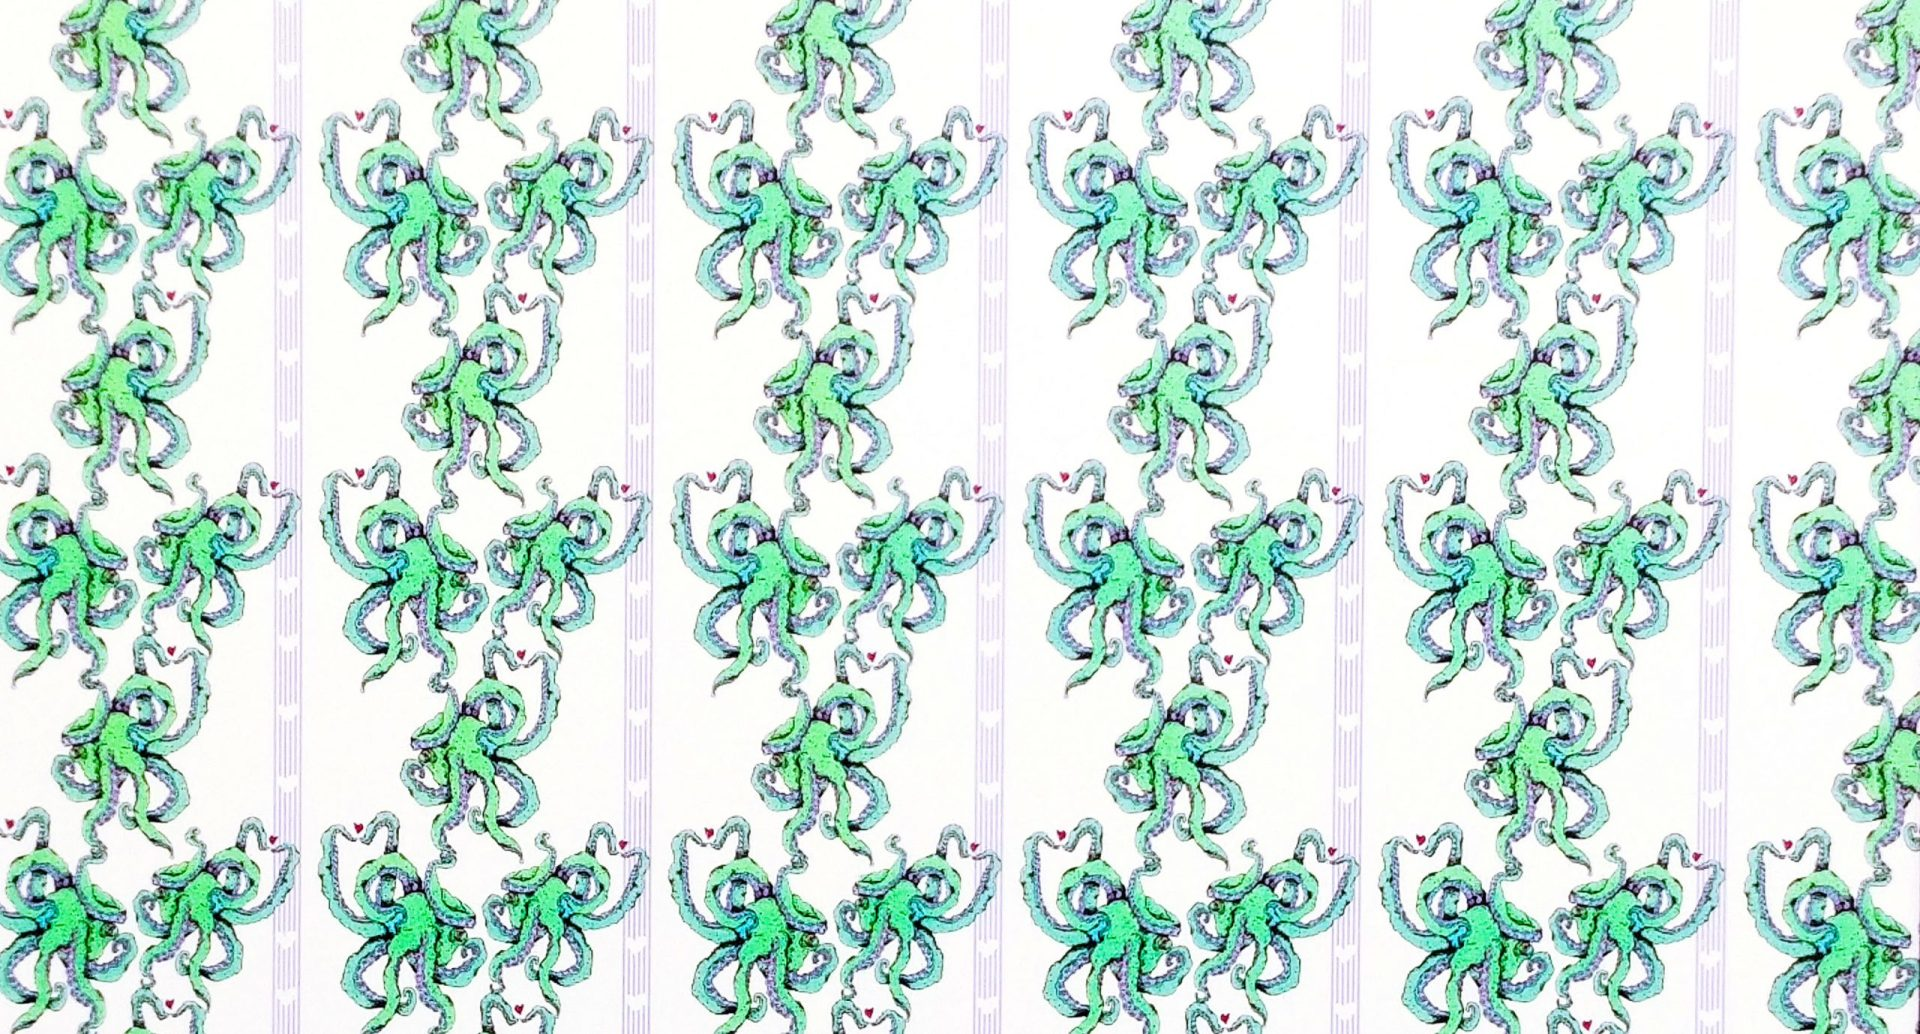 green octopus pattern that is tiled seamlessly like Victorian wallpaper designs